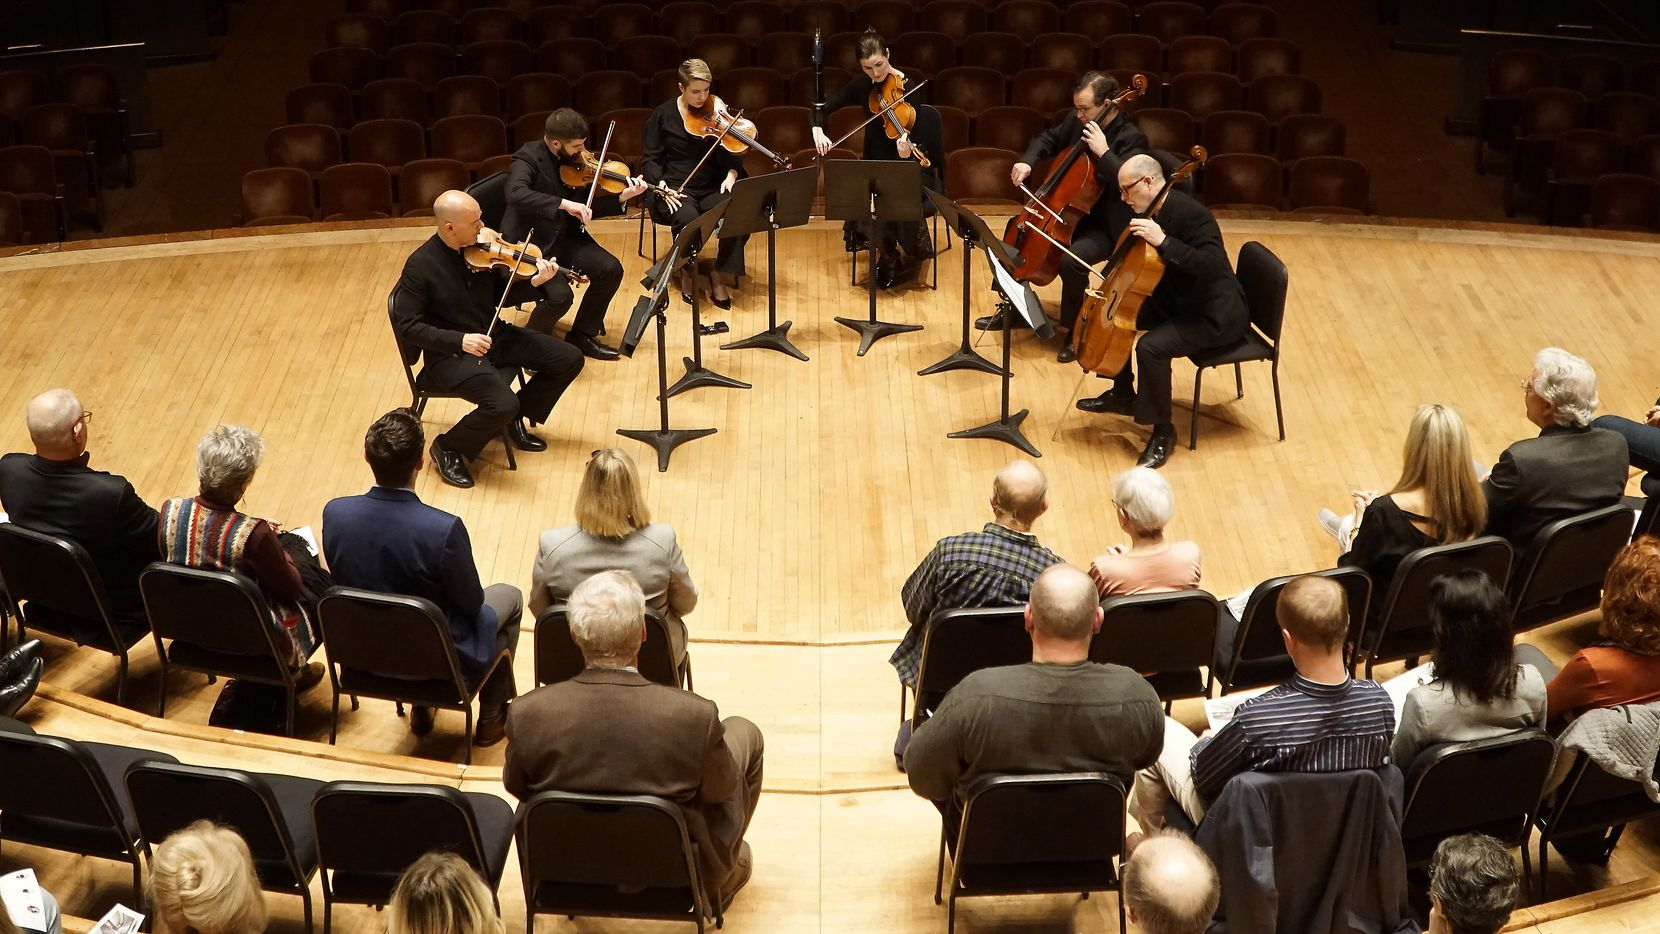 The Dallas Symphony Orchestra Principal Musicians Chamber Music Concert at the Morton H. Meyerson Symphony Center in Dallas on November 19, 2019.